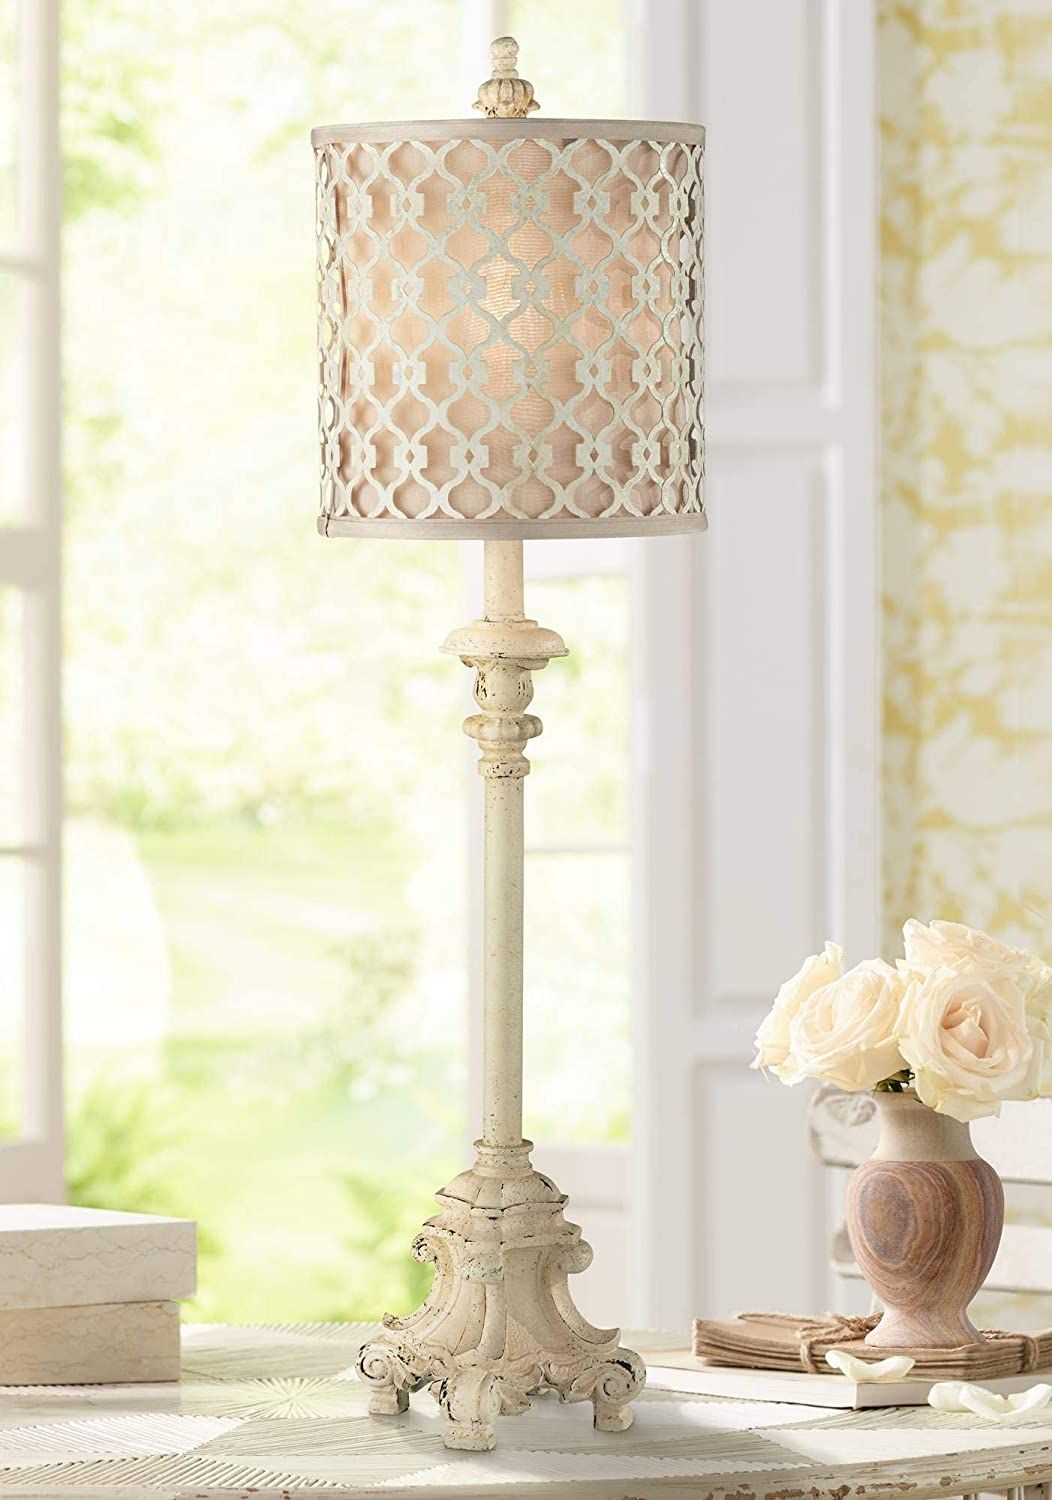 French Country Candlestick In 2021 French Country Candlesticks Vintage Table Lamp Buffet Table Lamps